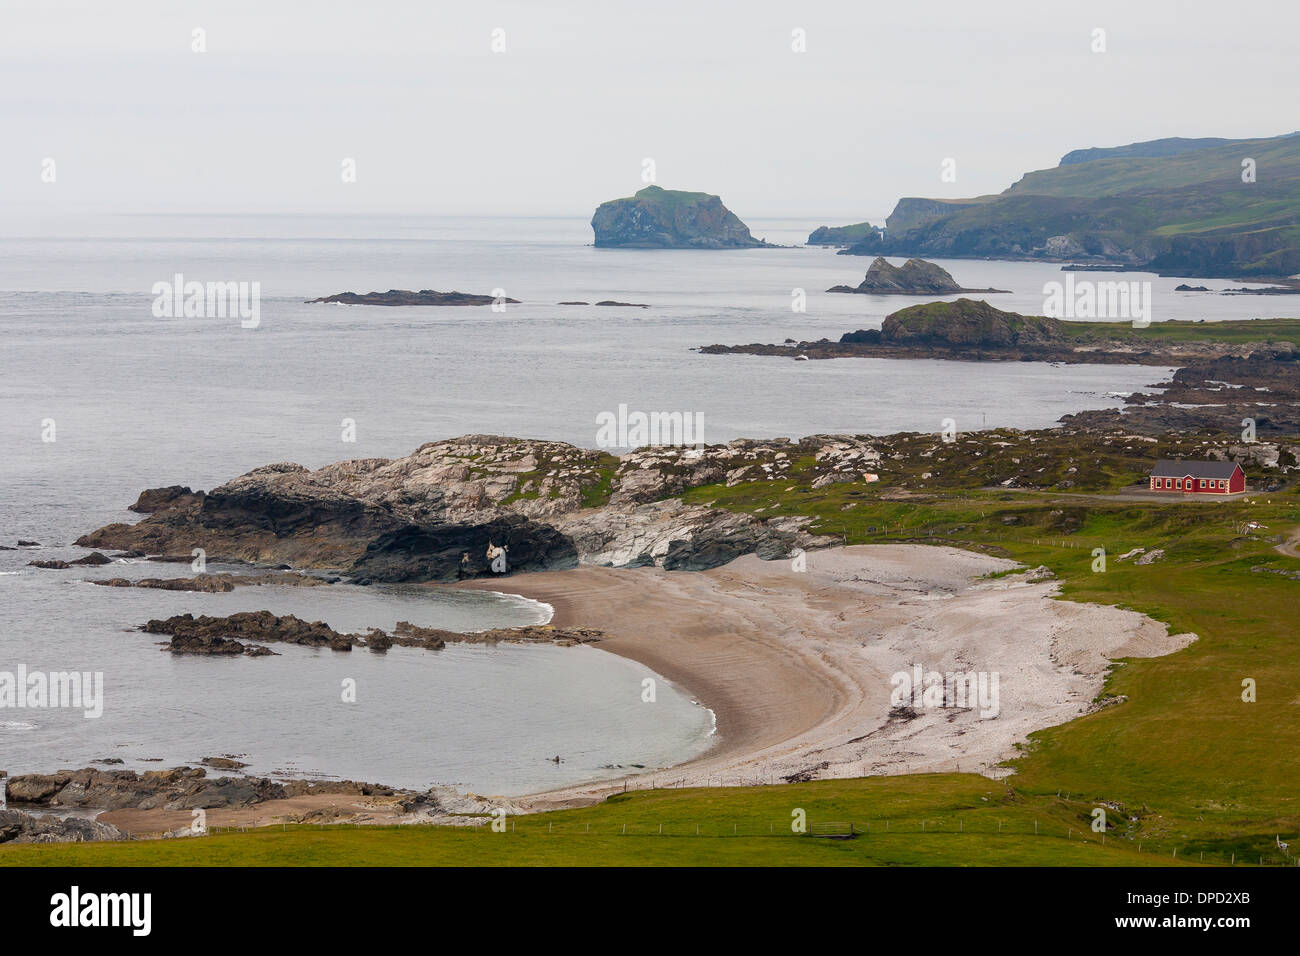 Coastal features and cliffs around Malin head on the most westerly point of Ireland - Stock Image